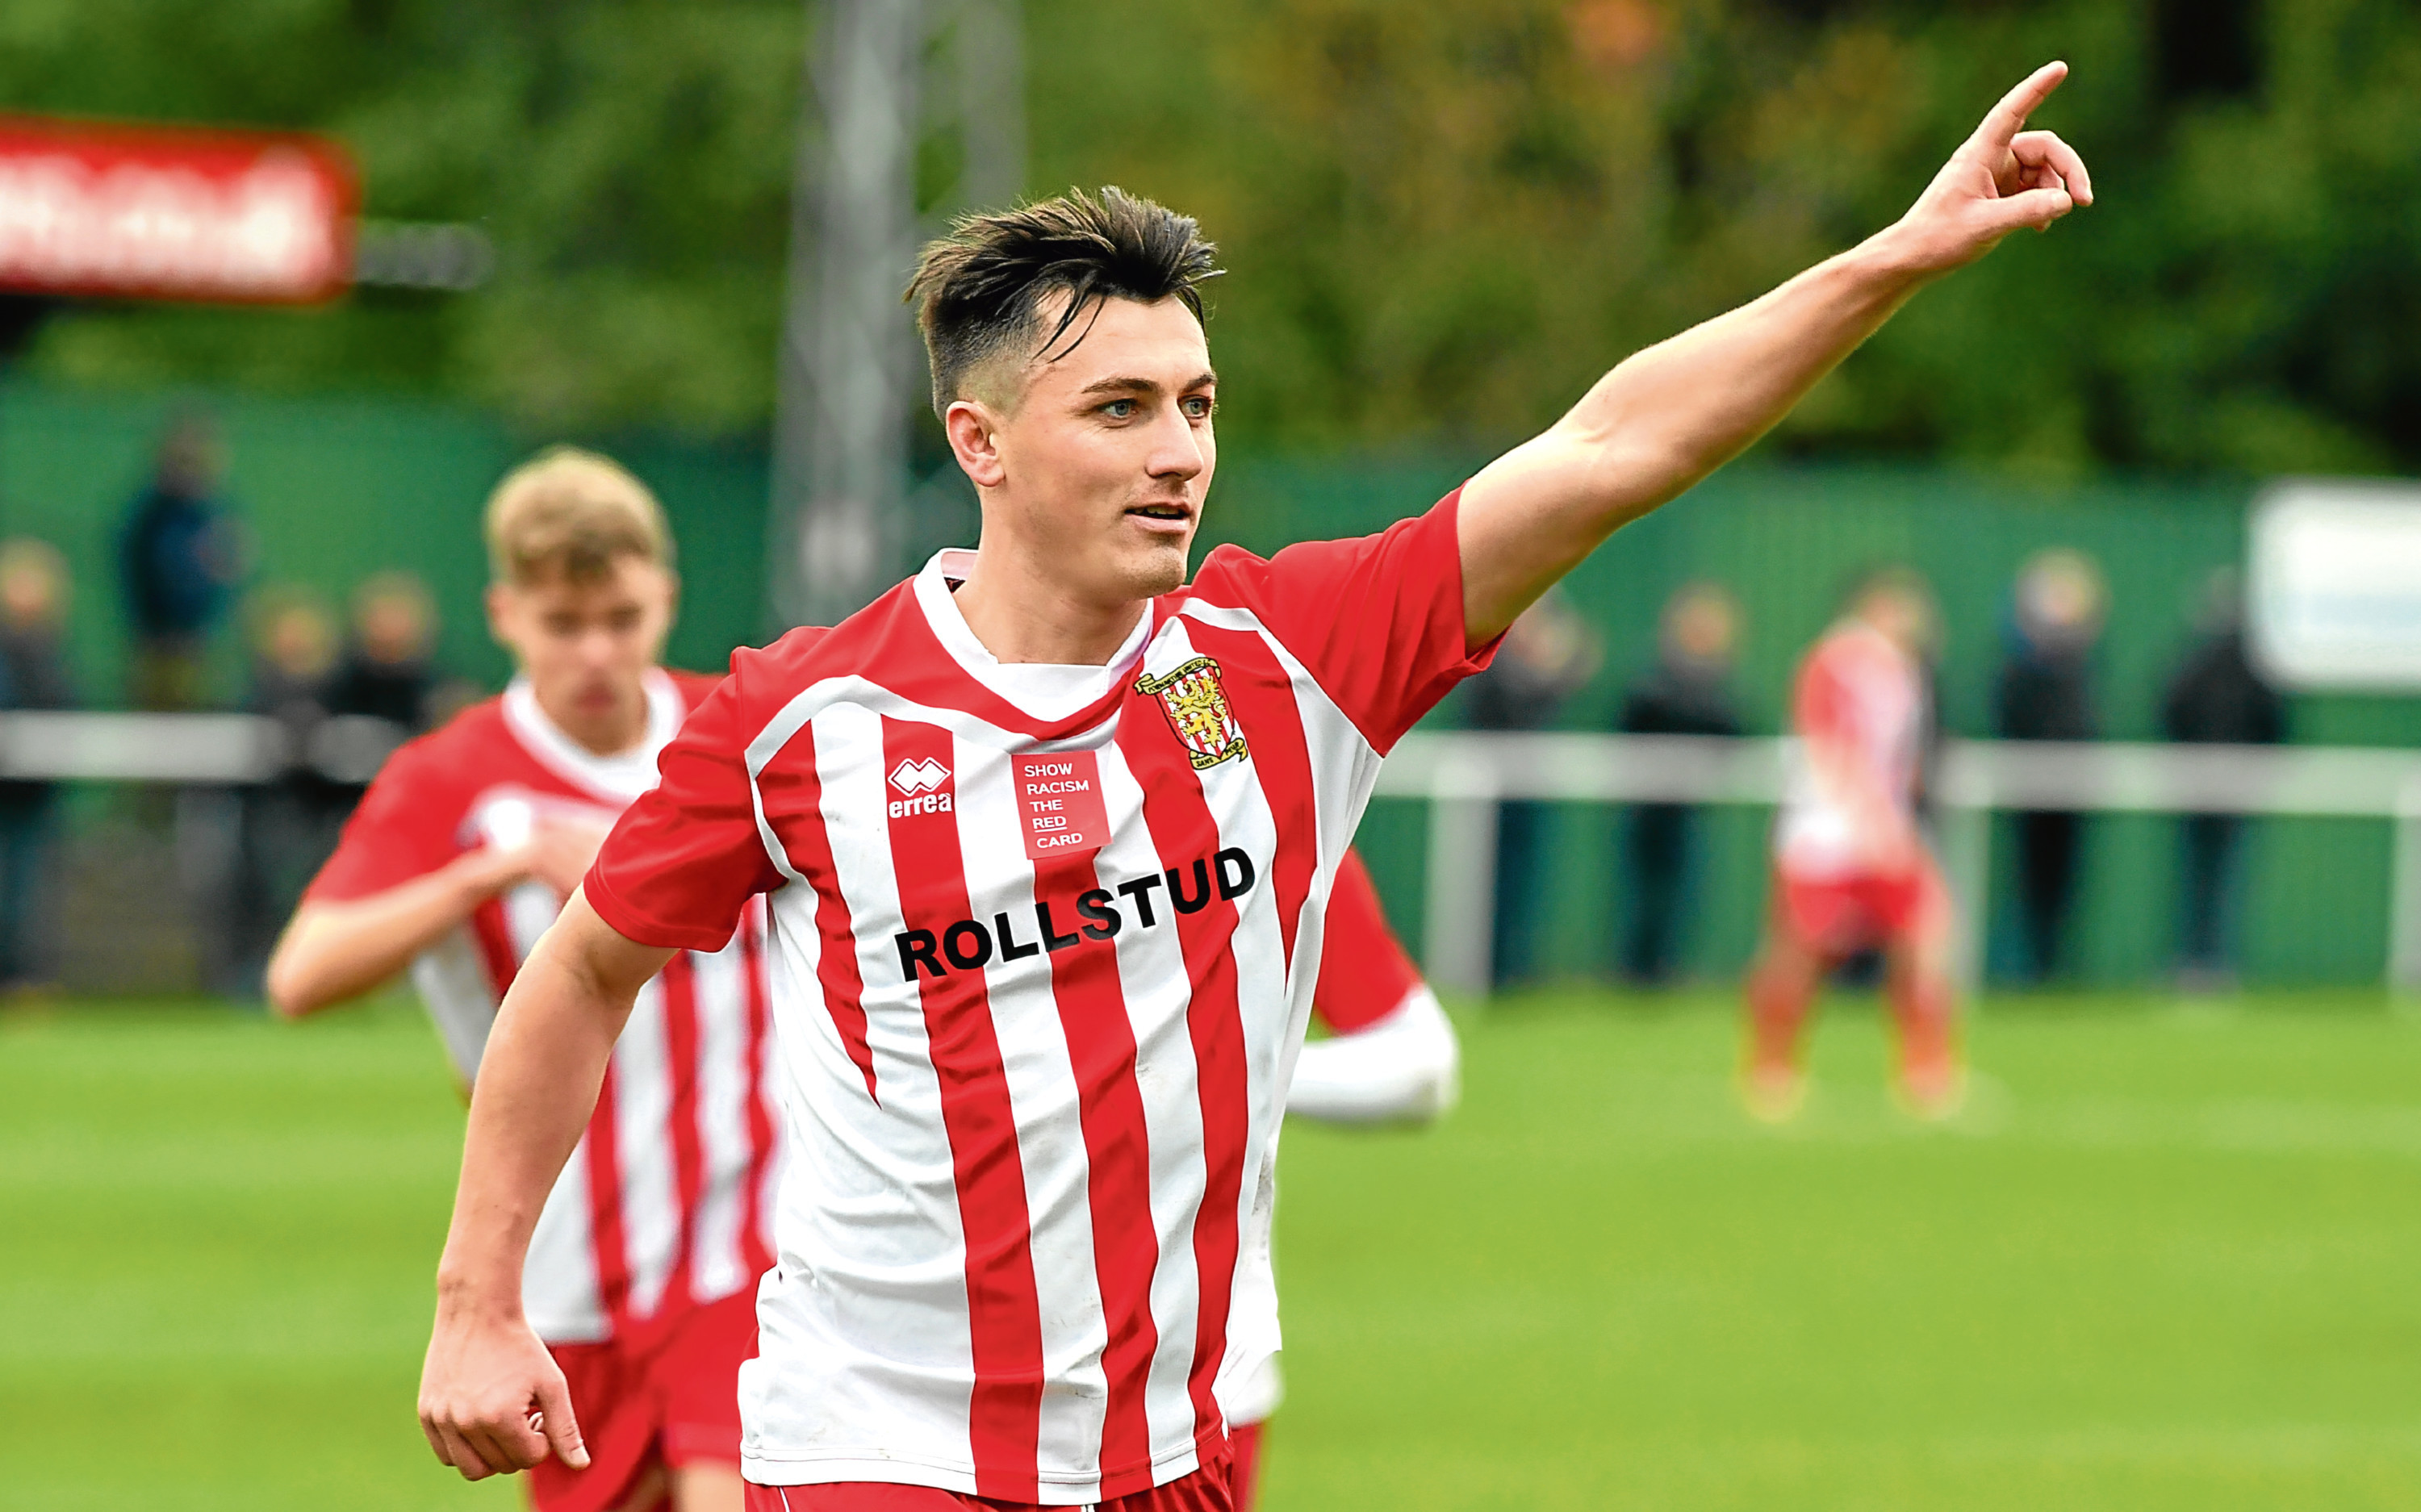 Archie MacPhee celebrates a goal for Formartine.